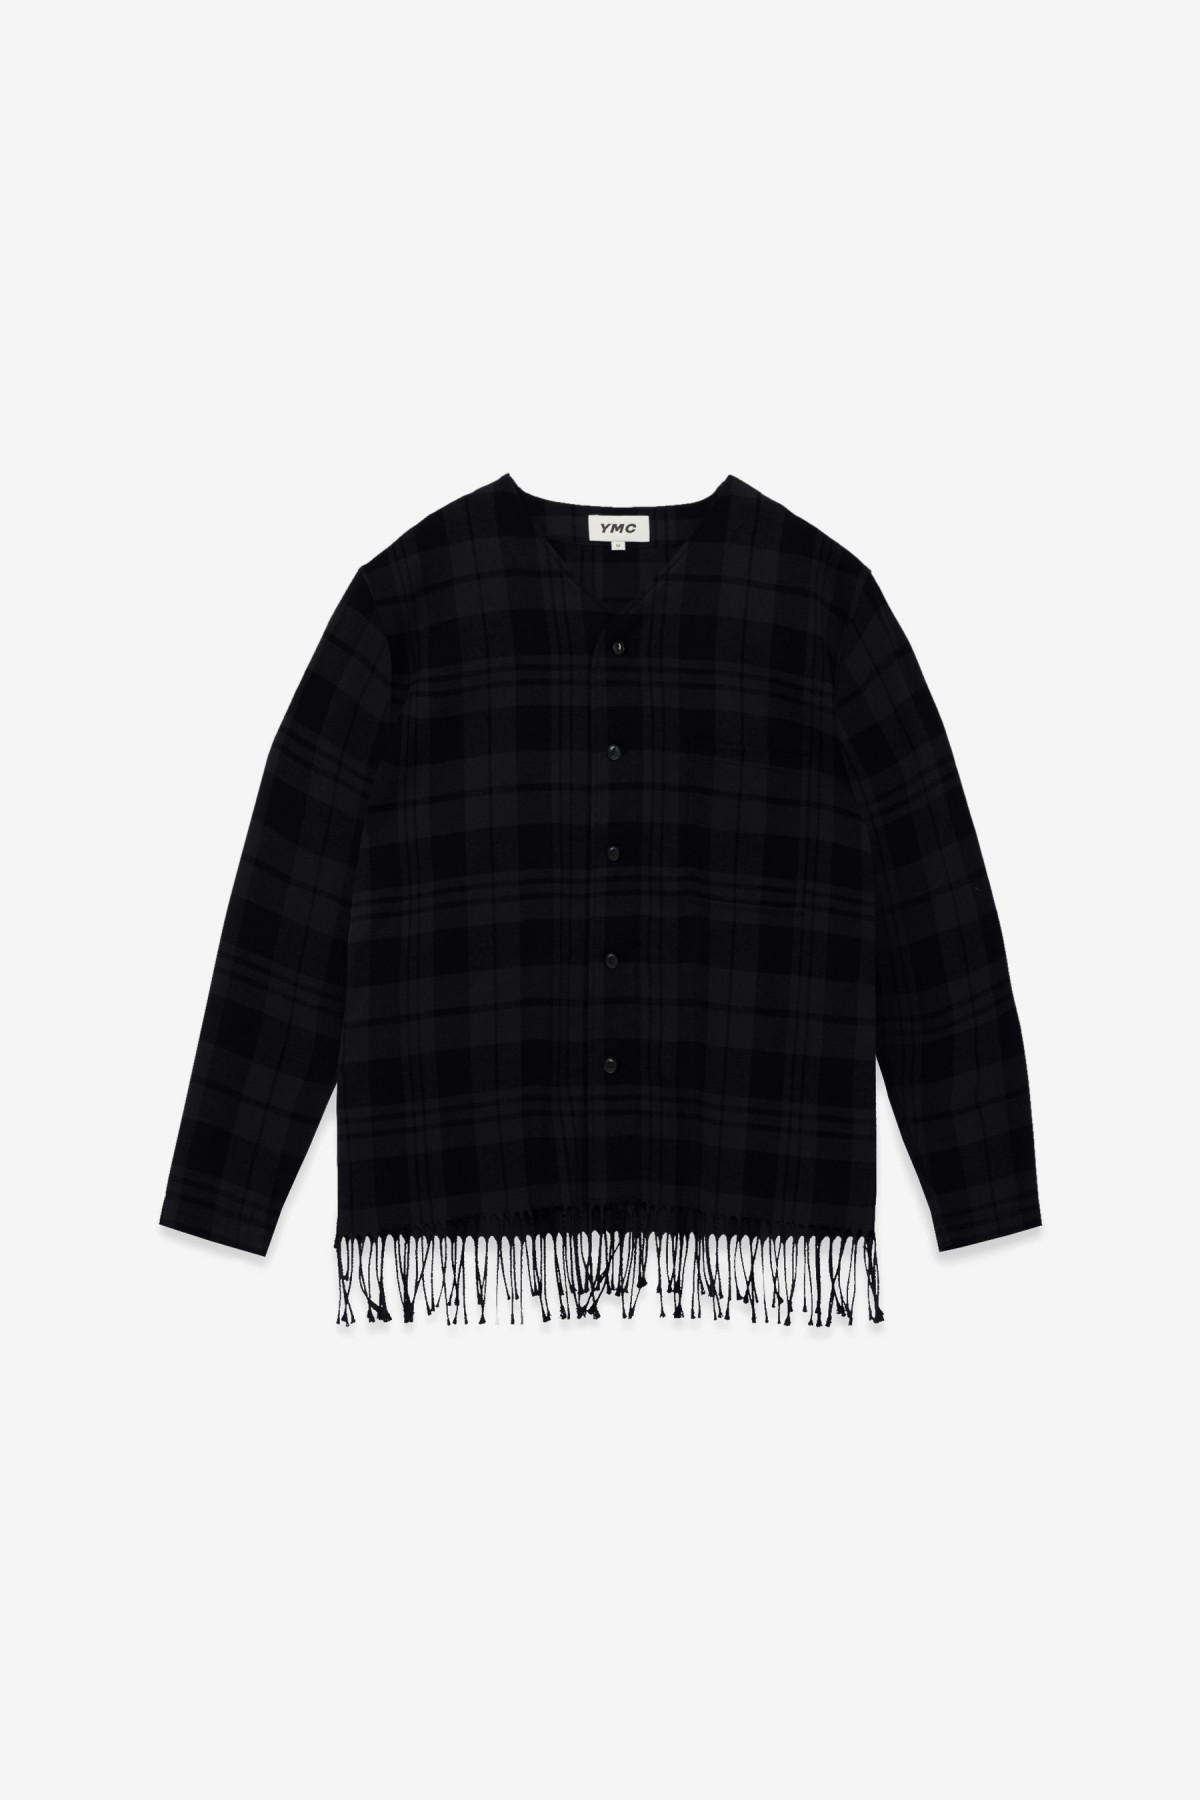 YMC You Must Create Labour Chore Jacket in Navy